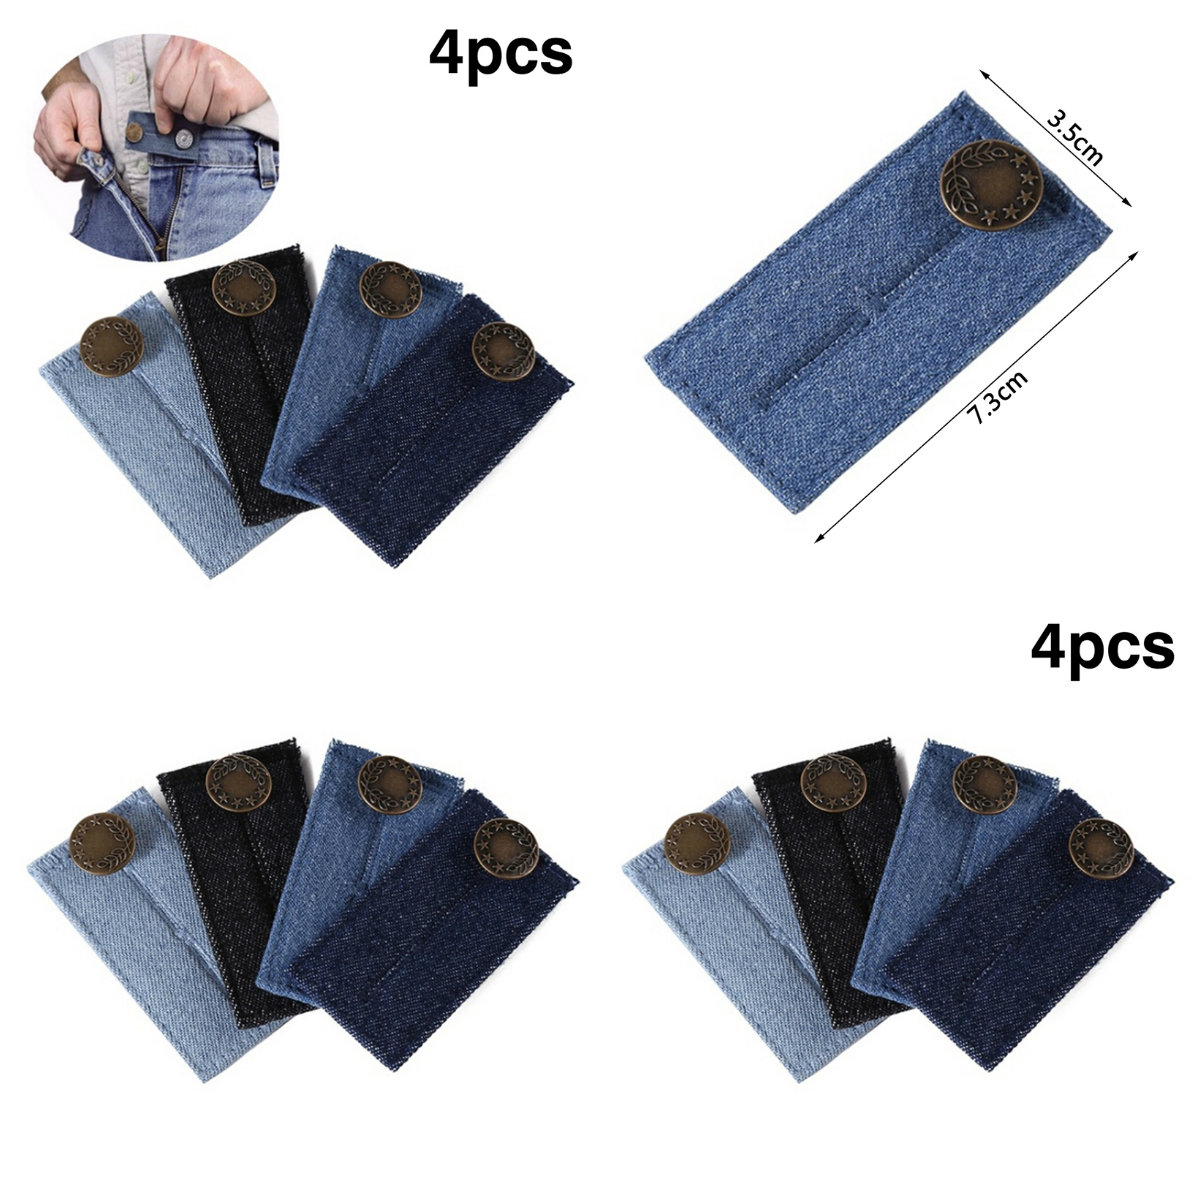 1/4Pcs  Adjustable Elastic Waist Extender With Metal Buttons Clothing Pants Accessories Maternity Pregnancy Waistband Belt